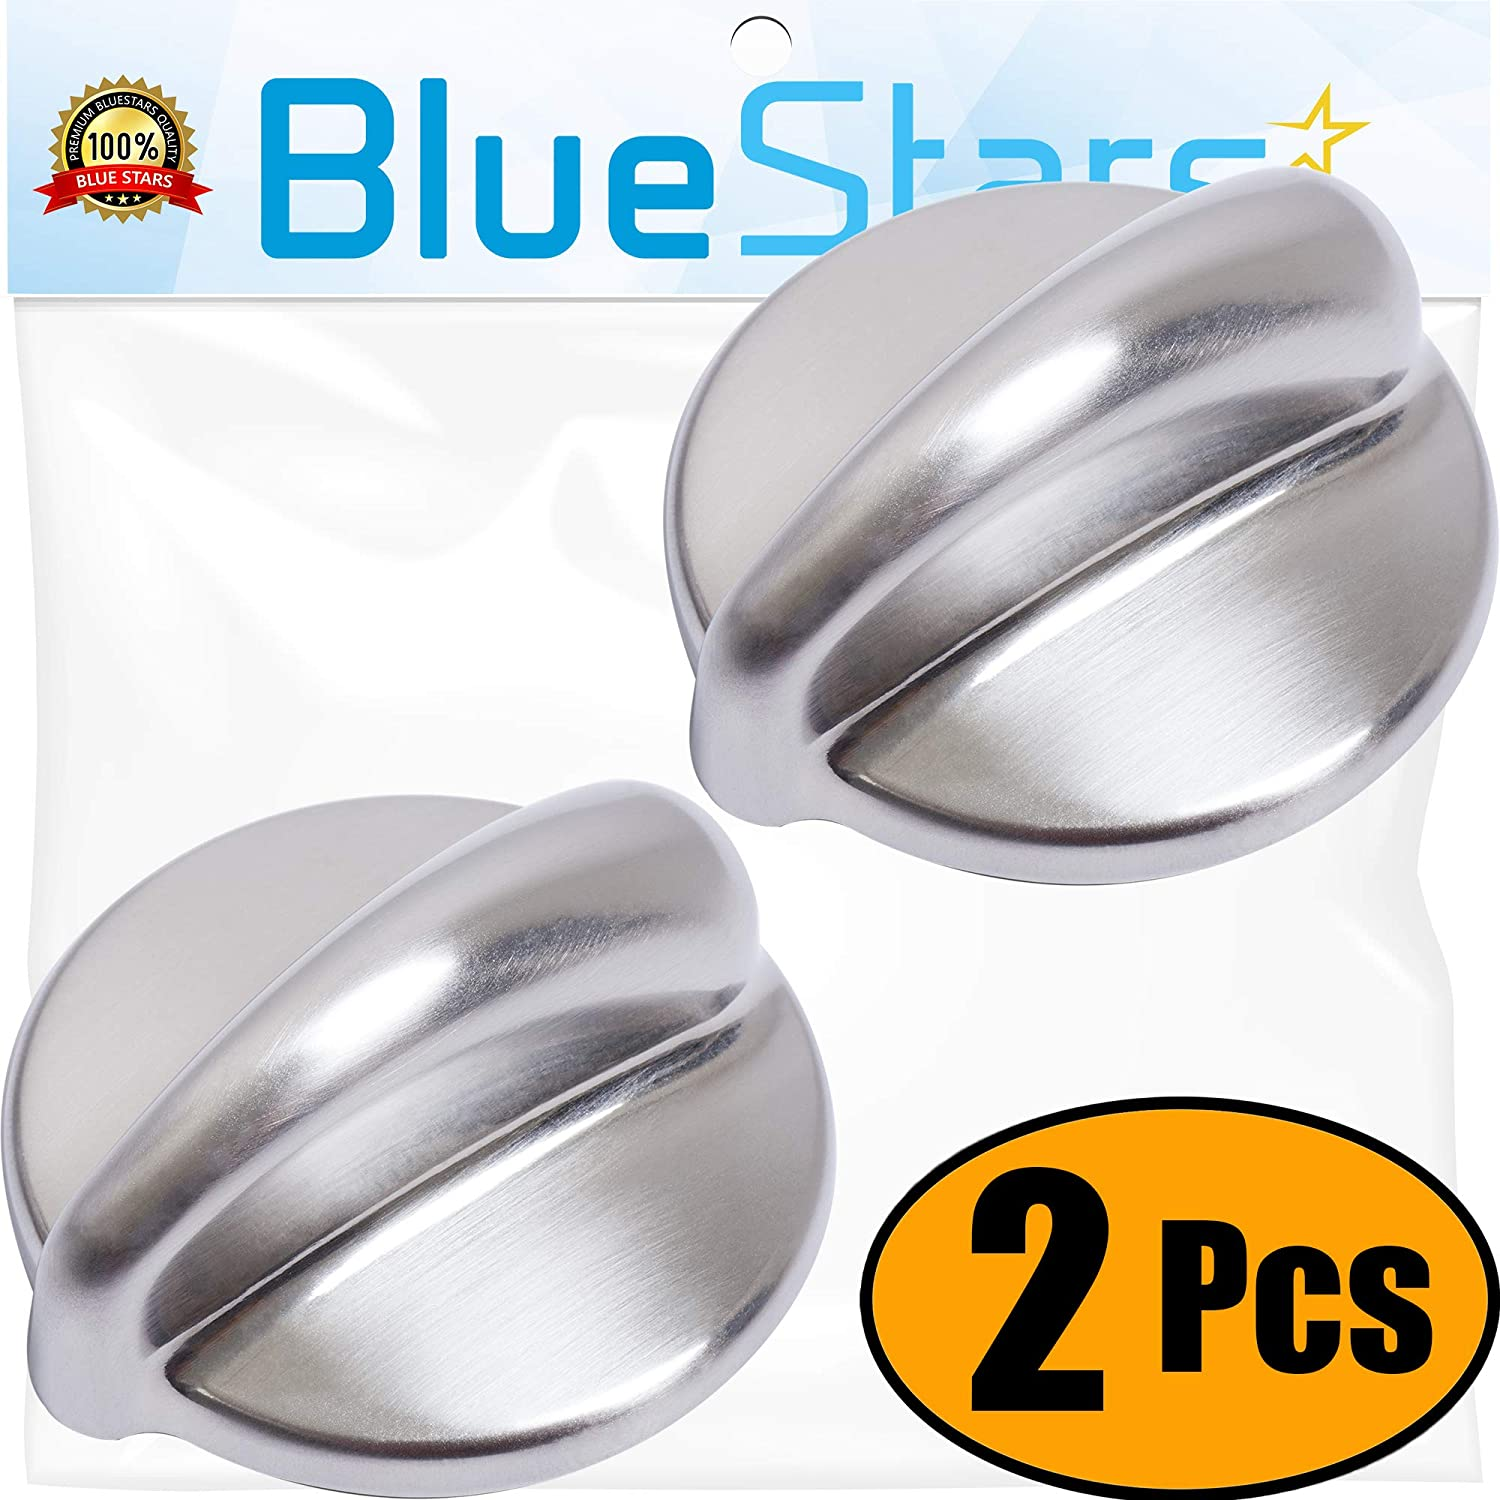 Ultra Durable WB03K10303 Cooktop Control Knob Replacement Part by Blue Stars- Exact Fit for General Electric Range - Replaces 1810427 AP4980246 WB03K10208 - PACK OF 2